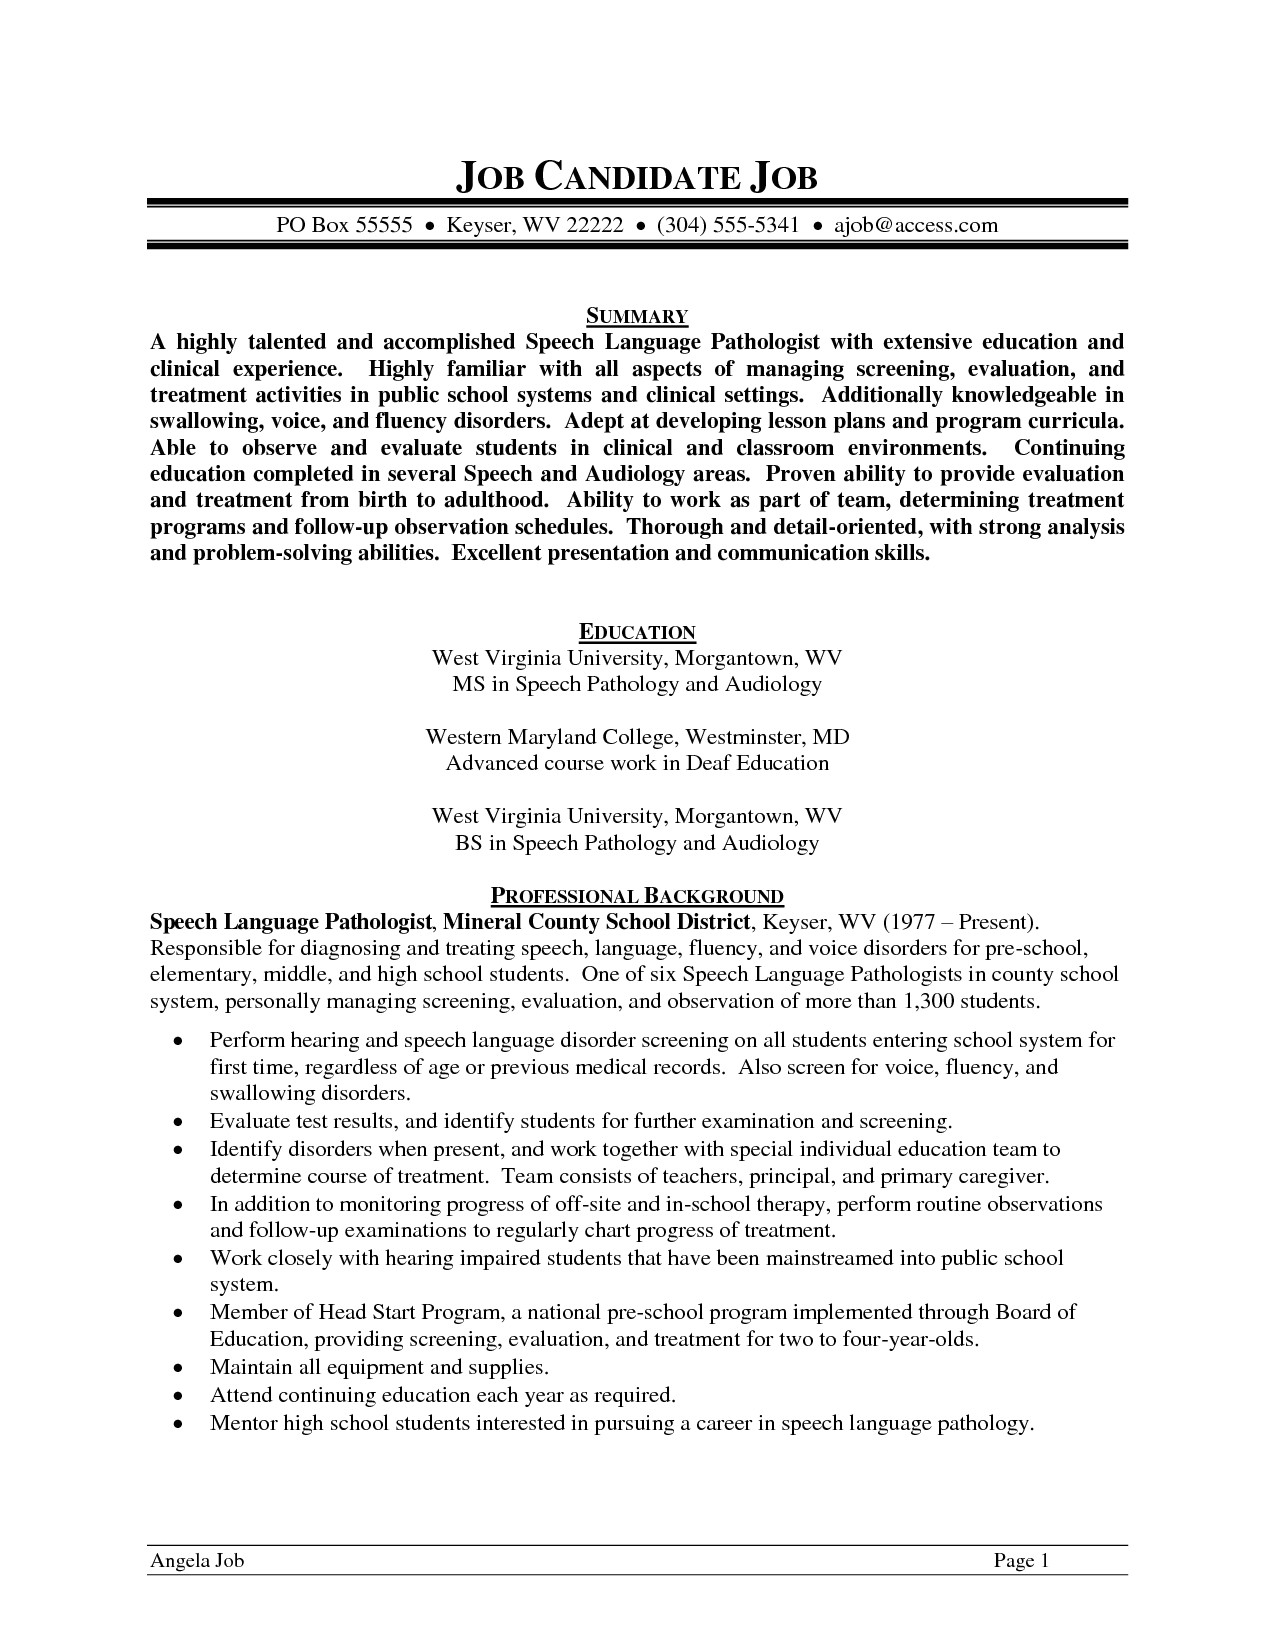 sample speech pathologist resume